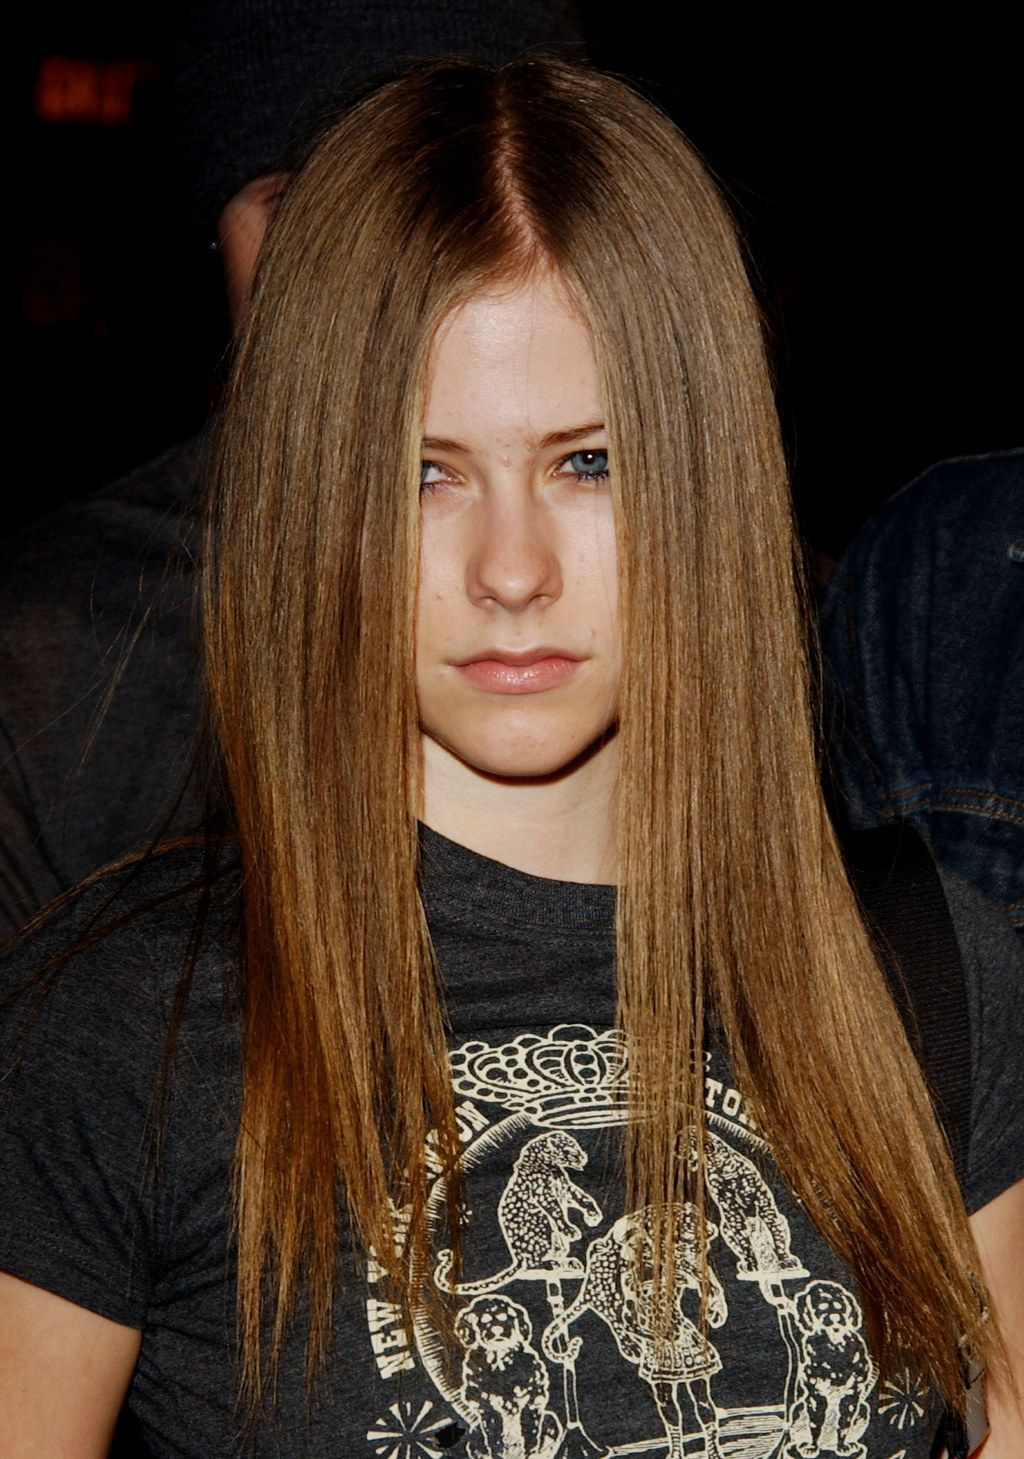 And when she truly perfected the emo hair over the eye look in